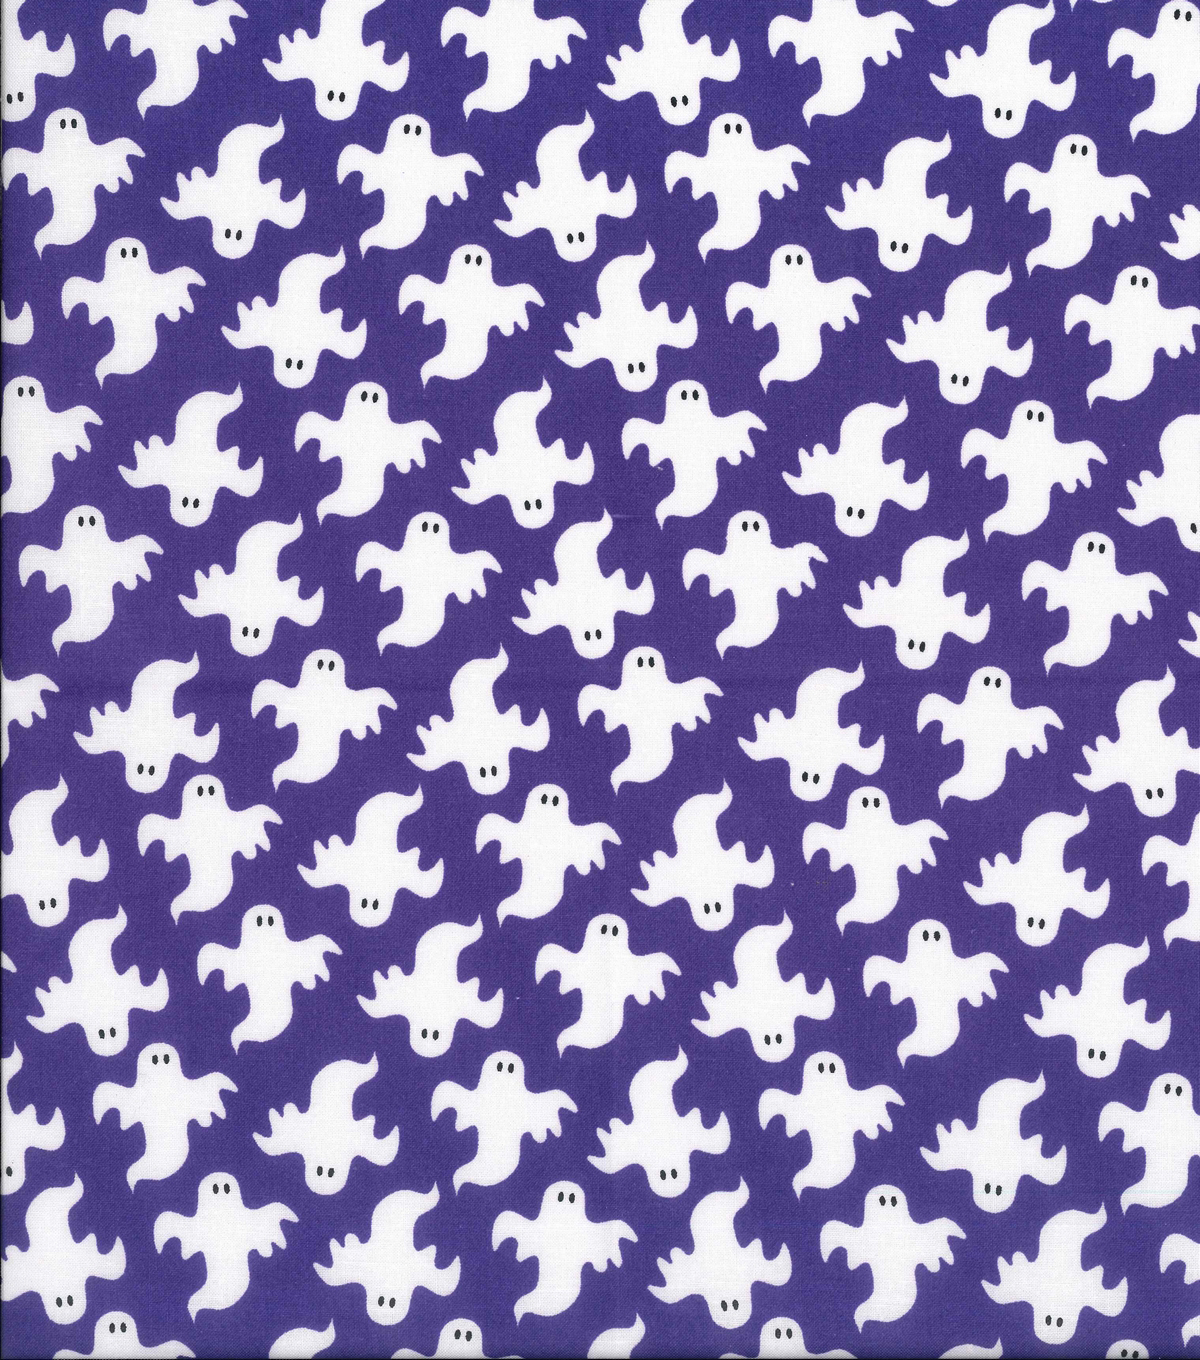 Halloween Cotton Fabric 43''-Large Ghosts on Purple